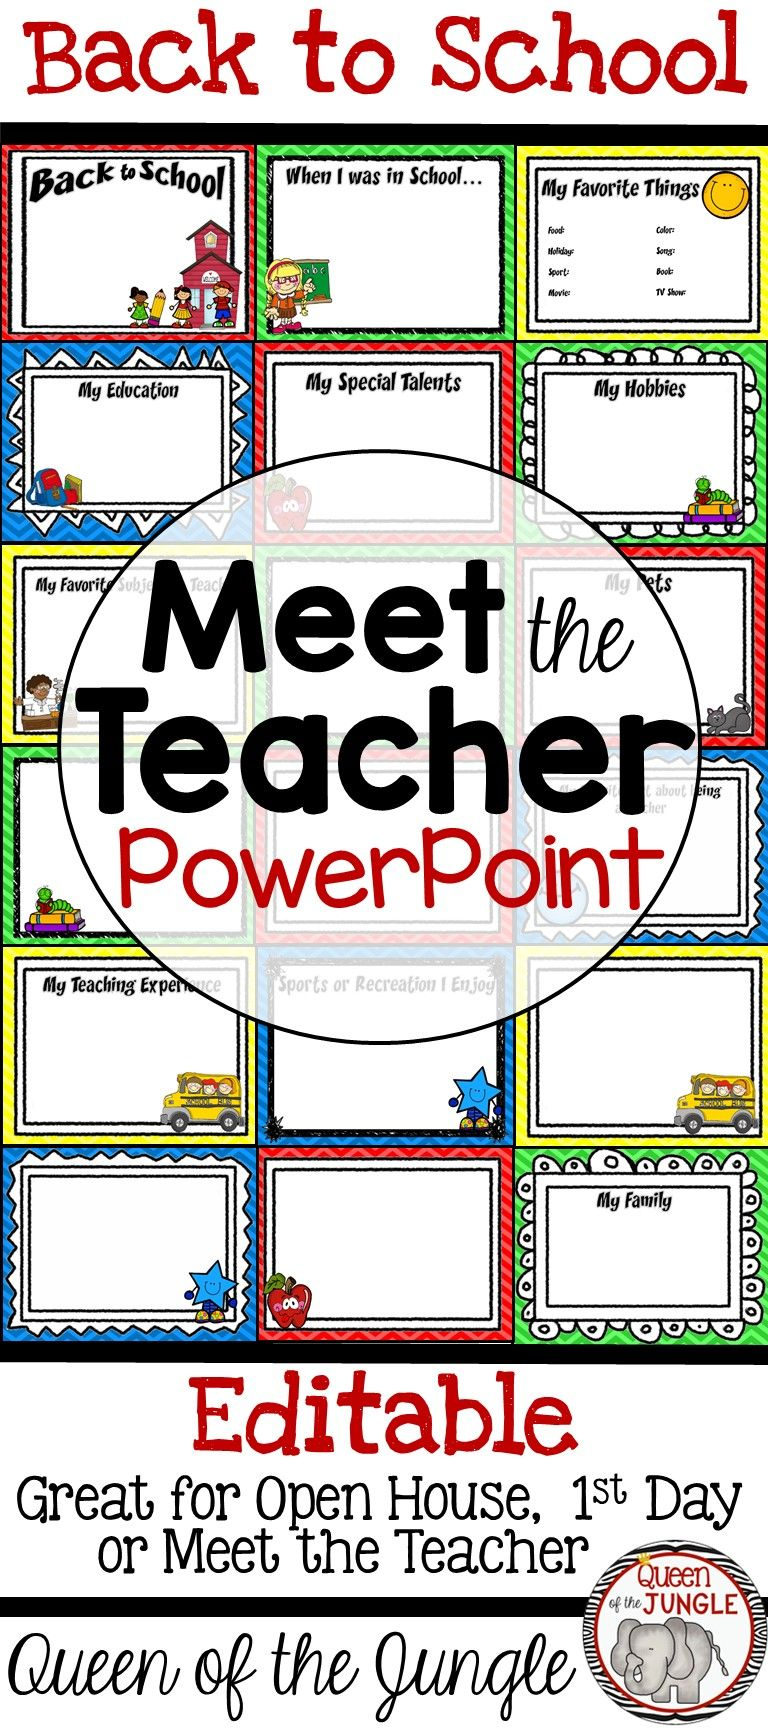 back to school powerpoint template great for open house meet the teacher and 1st day of school editable